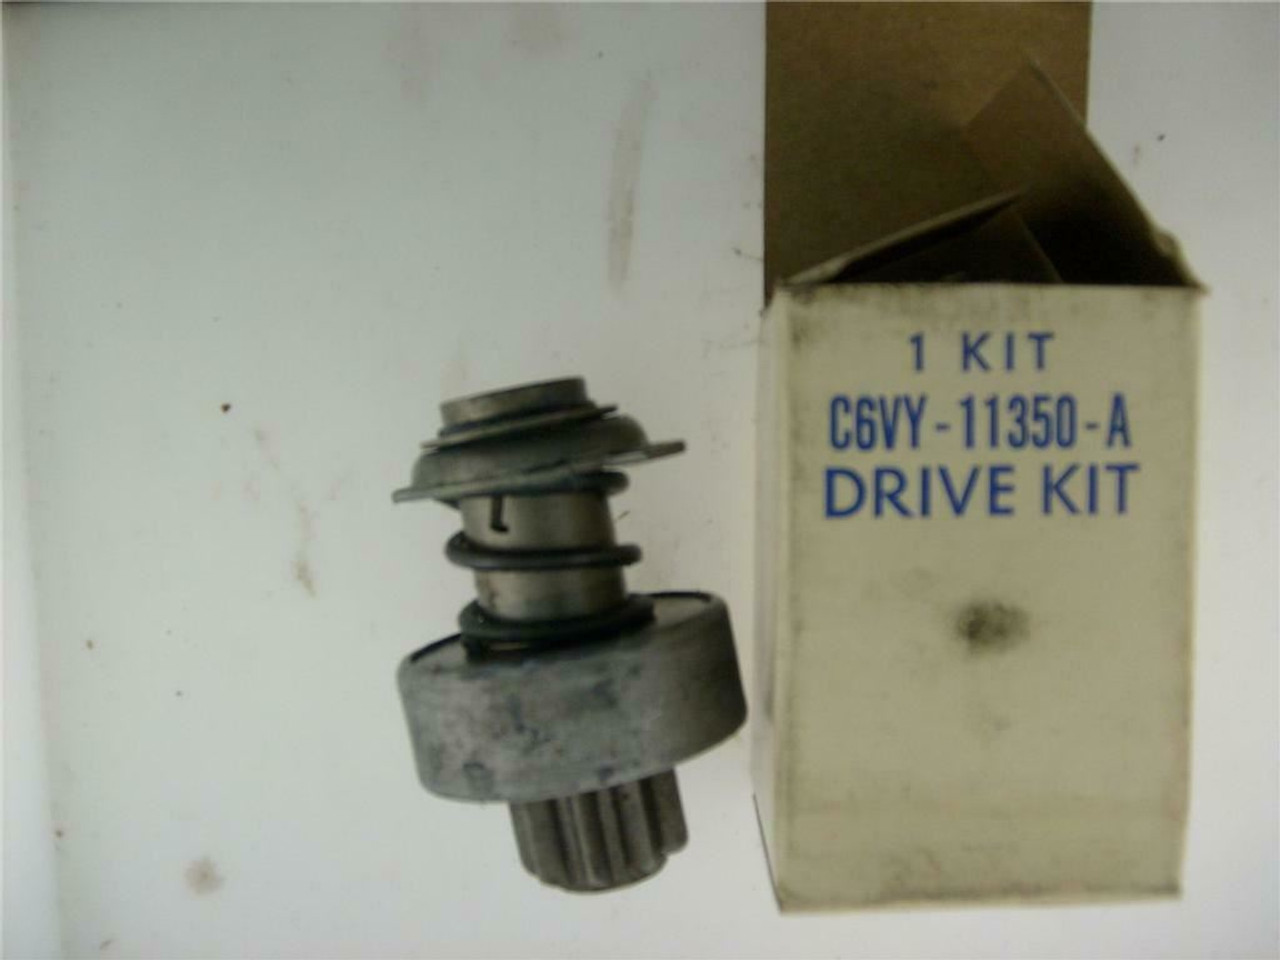 Ford Lincoln Mercury 1964-72 NOS Starter Drive C6VY-11350-A  made in USA